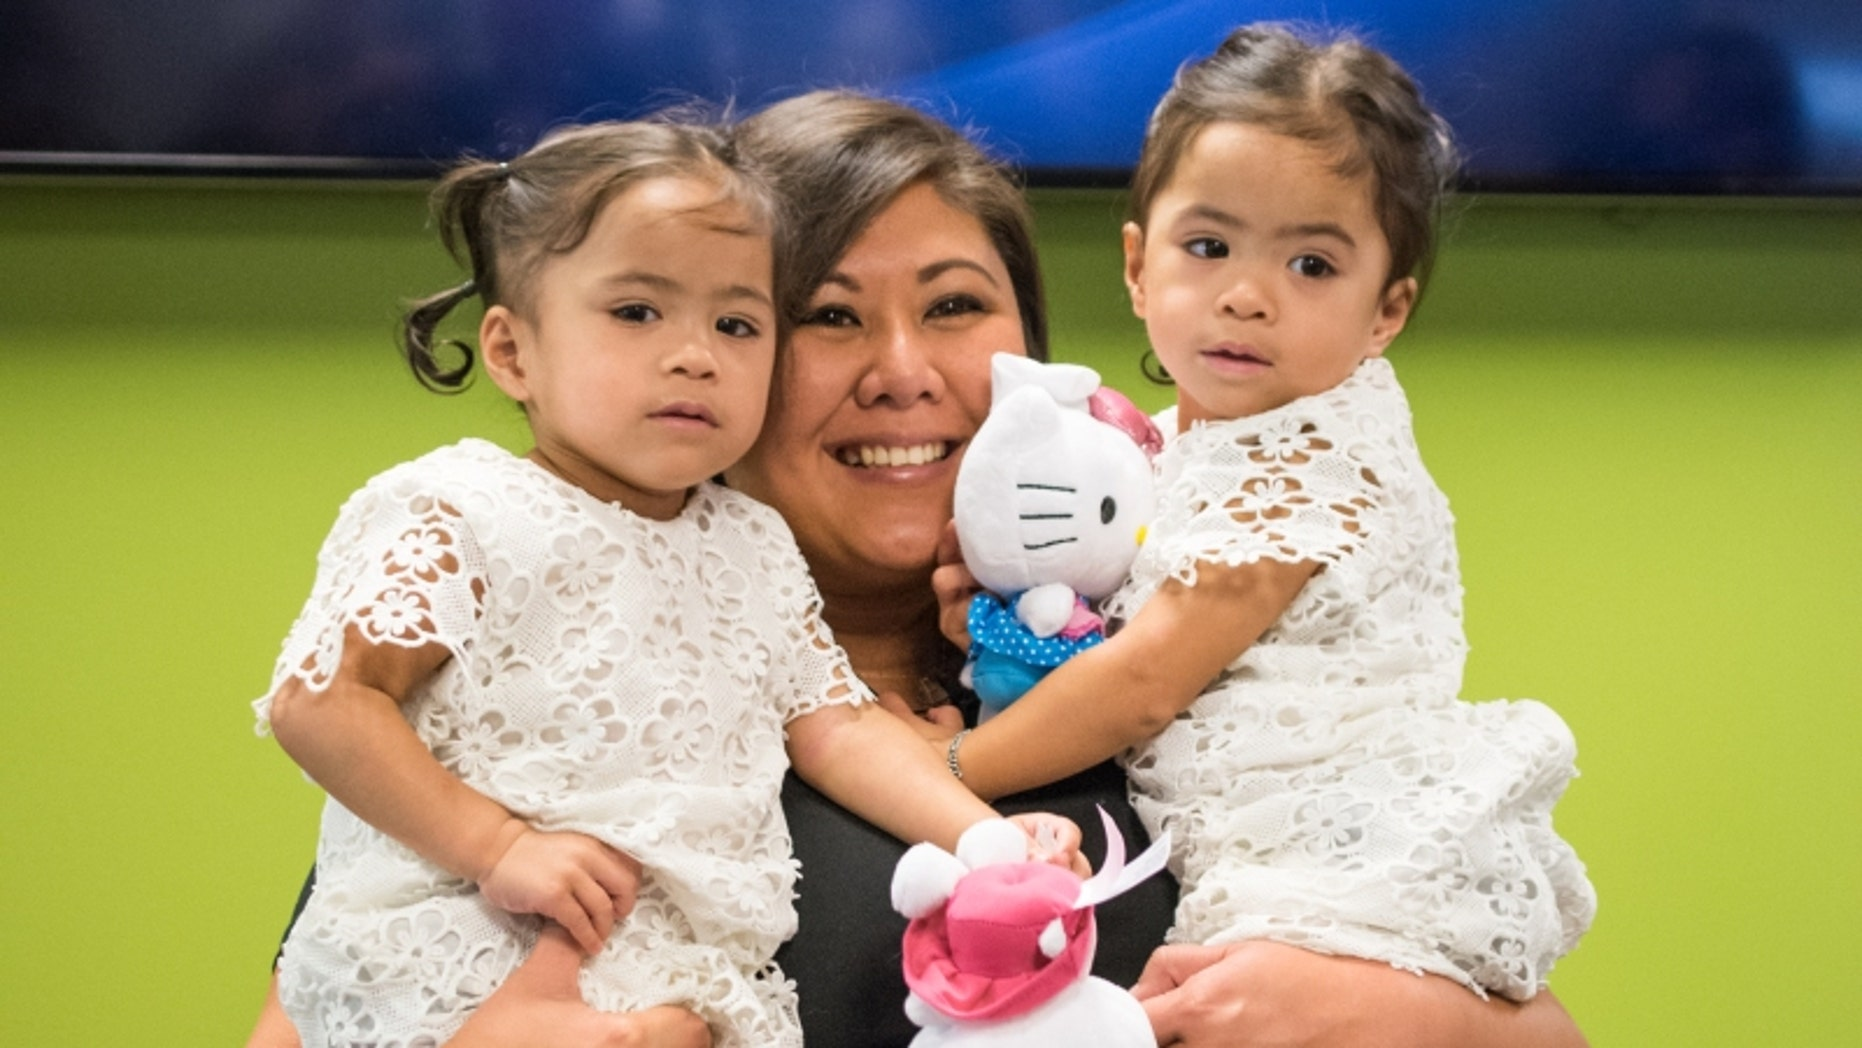 Zoey and Zayne Espayos are pictured with Judiel Ennis.